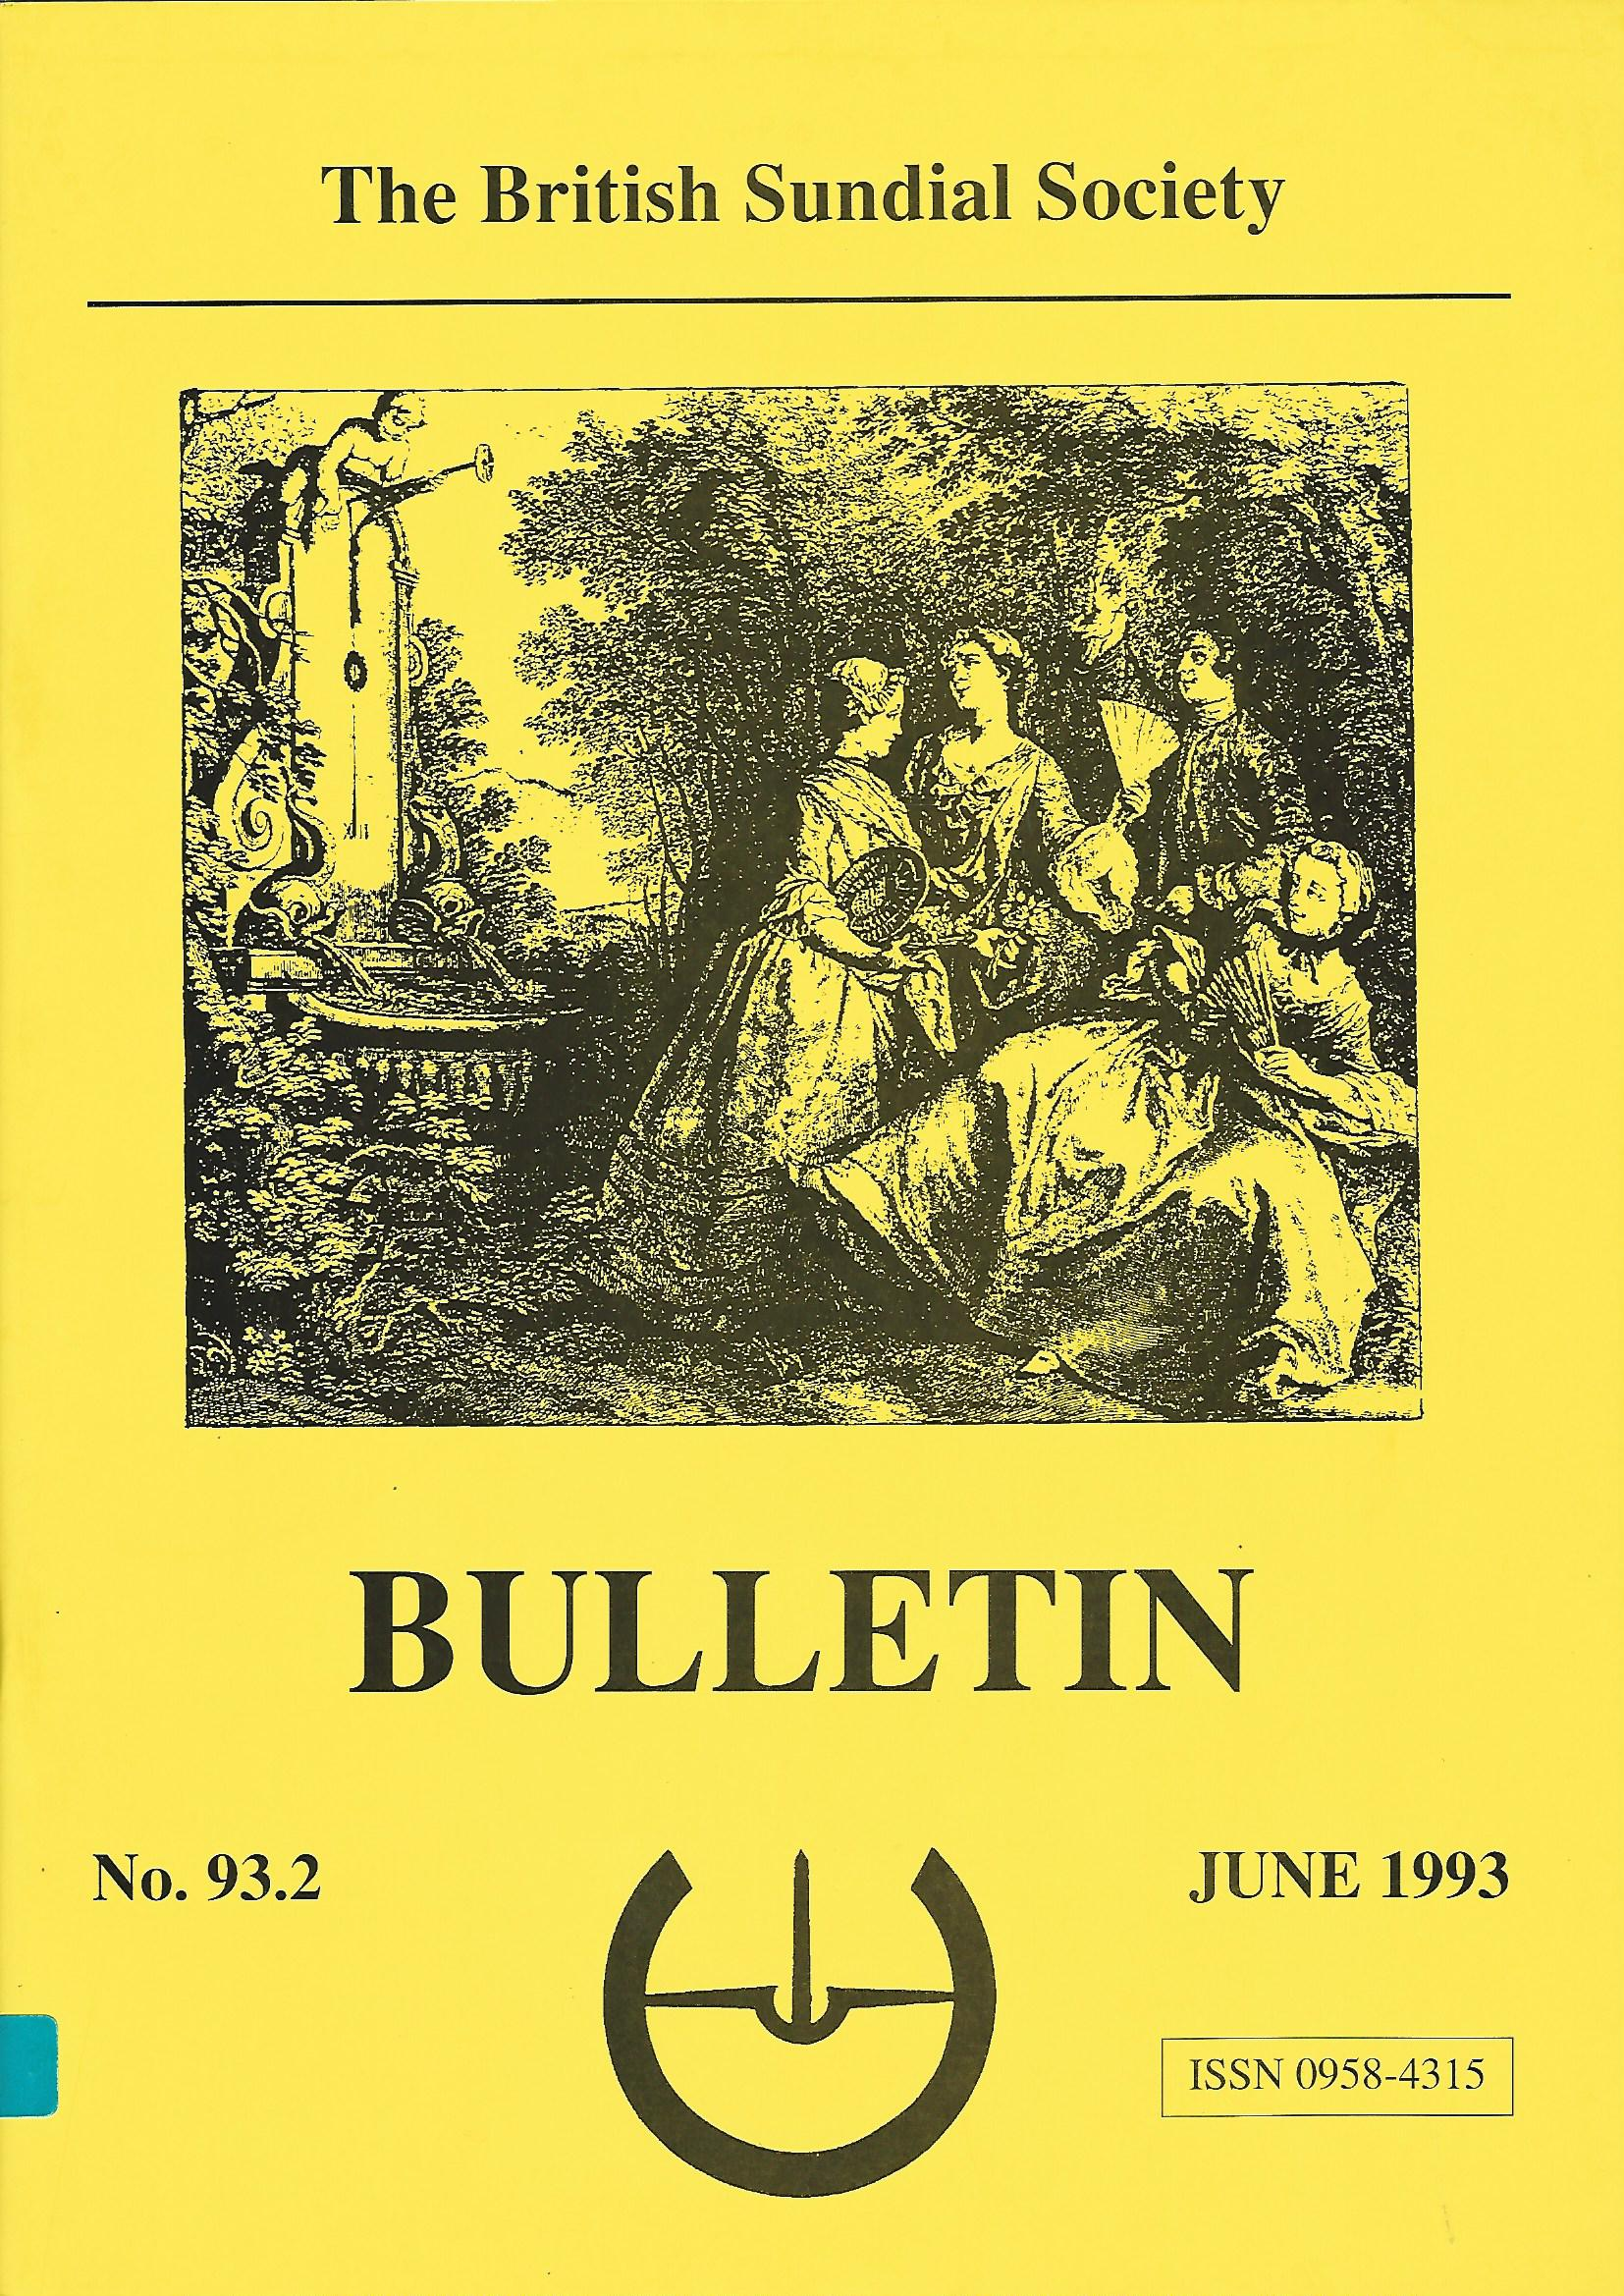 Image for The British Sundial Society Bulletin No. 93.2, June 1993.